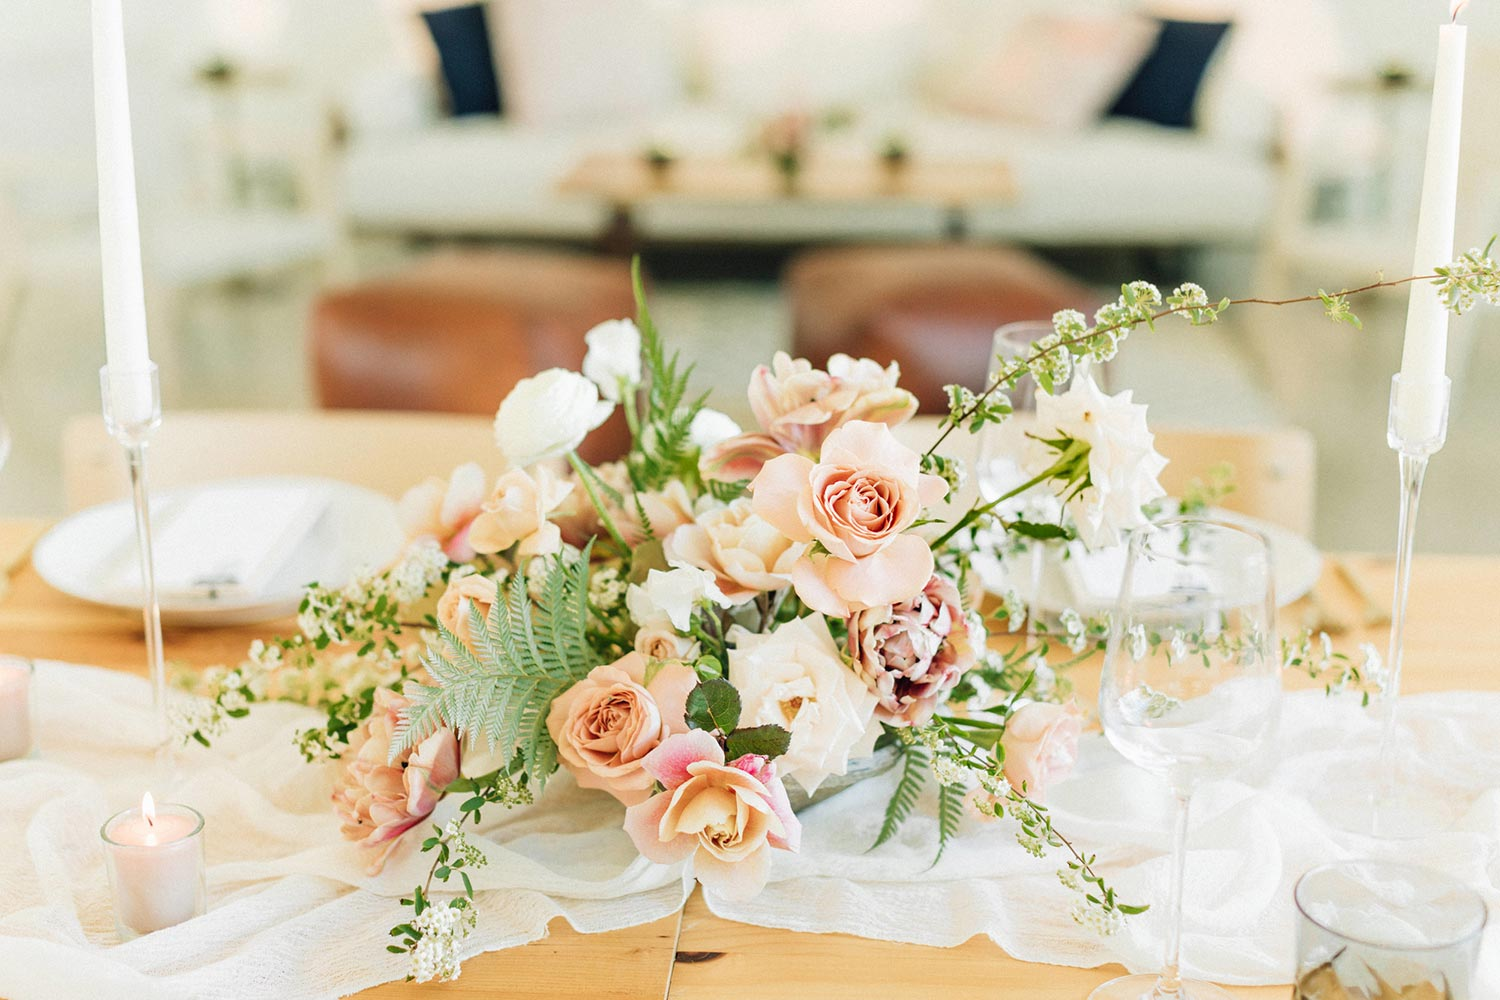 Centerpiece flower design by Color Theory Collective